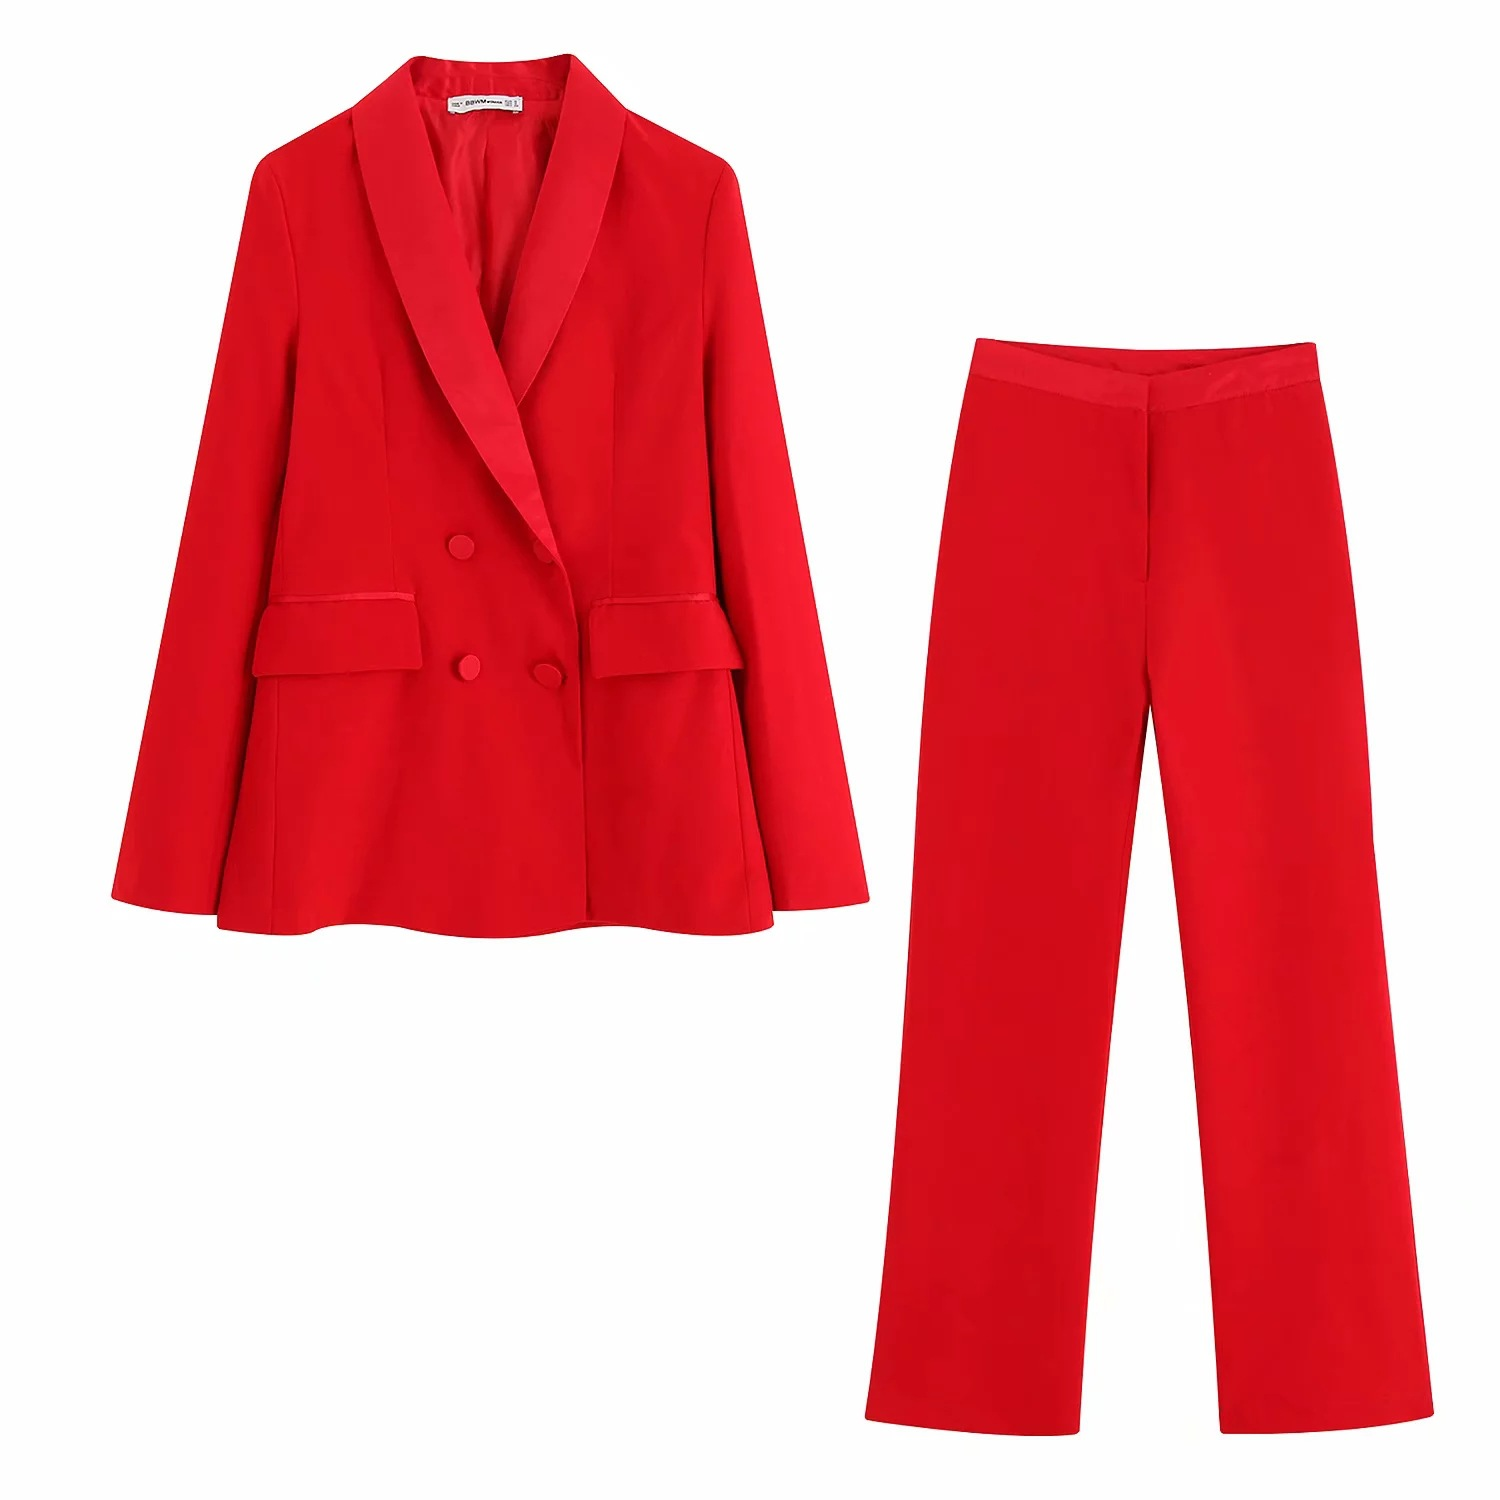 Autumn New Casual Woman Suit Fashion Double-breasted Red Blazer Pants Suit Female 2019 Elegant Office Suit Two-piece Suit